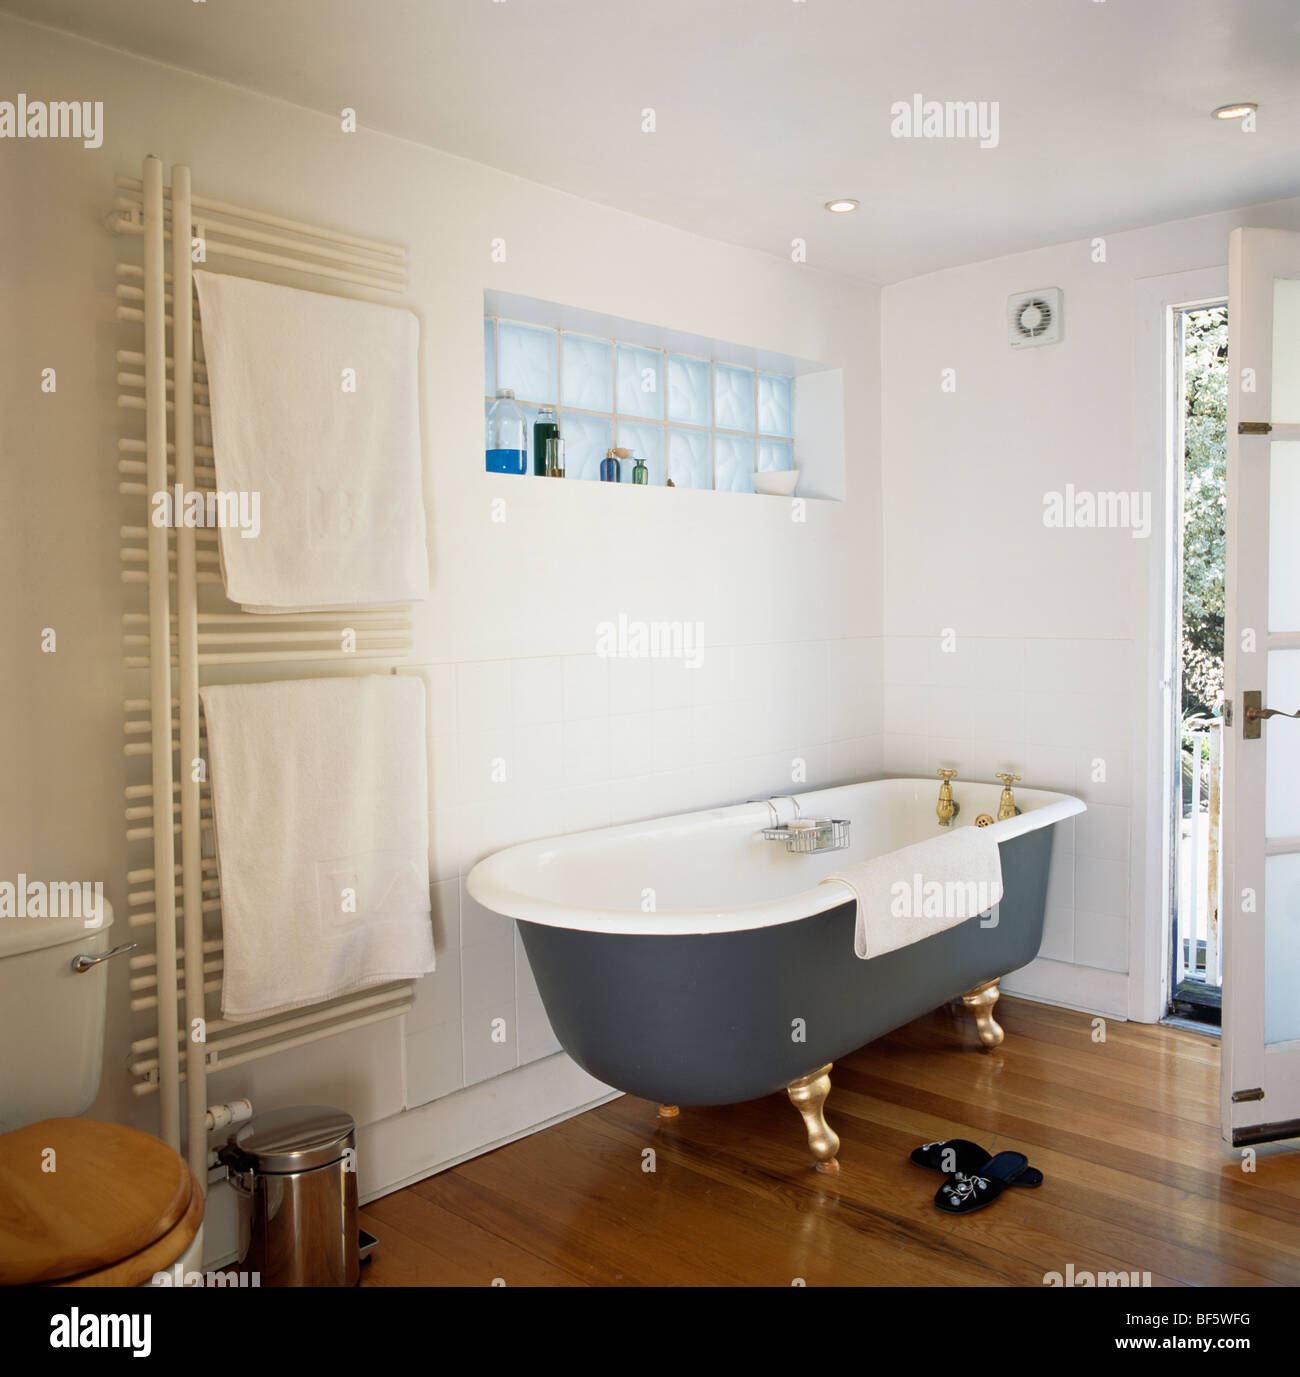 Black roll-top bath and wooden flooring in modern white bathroom ...